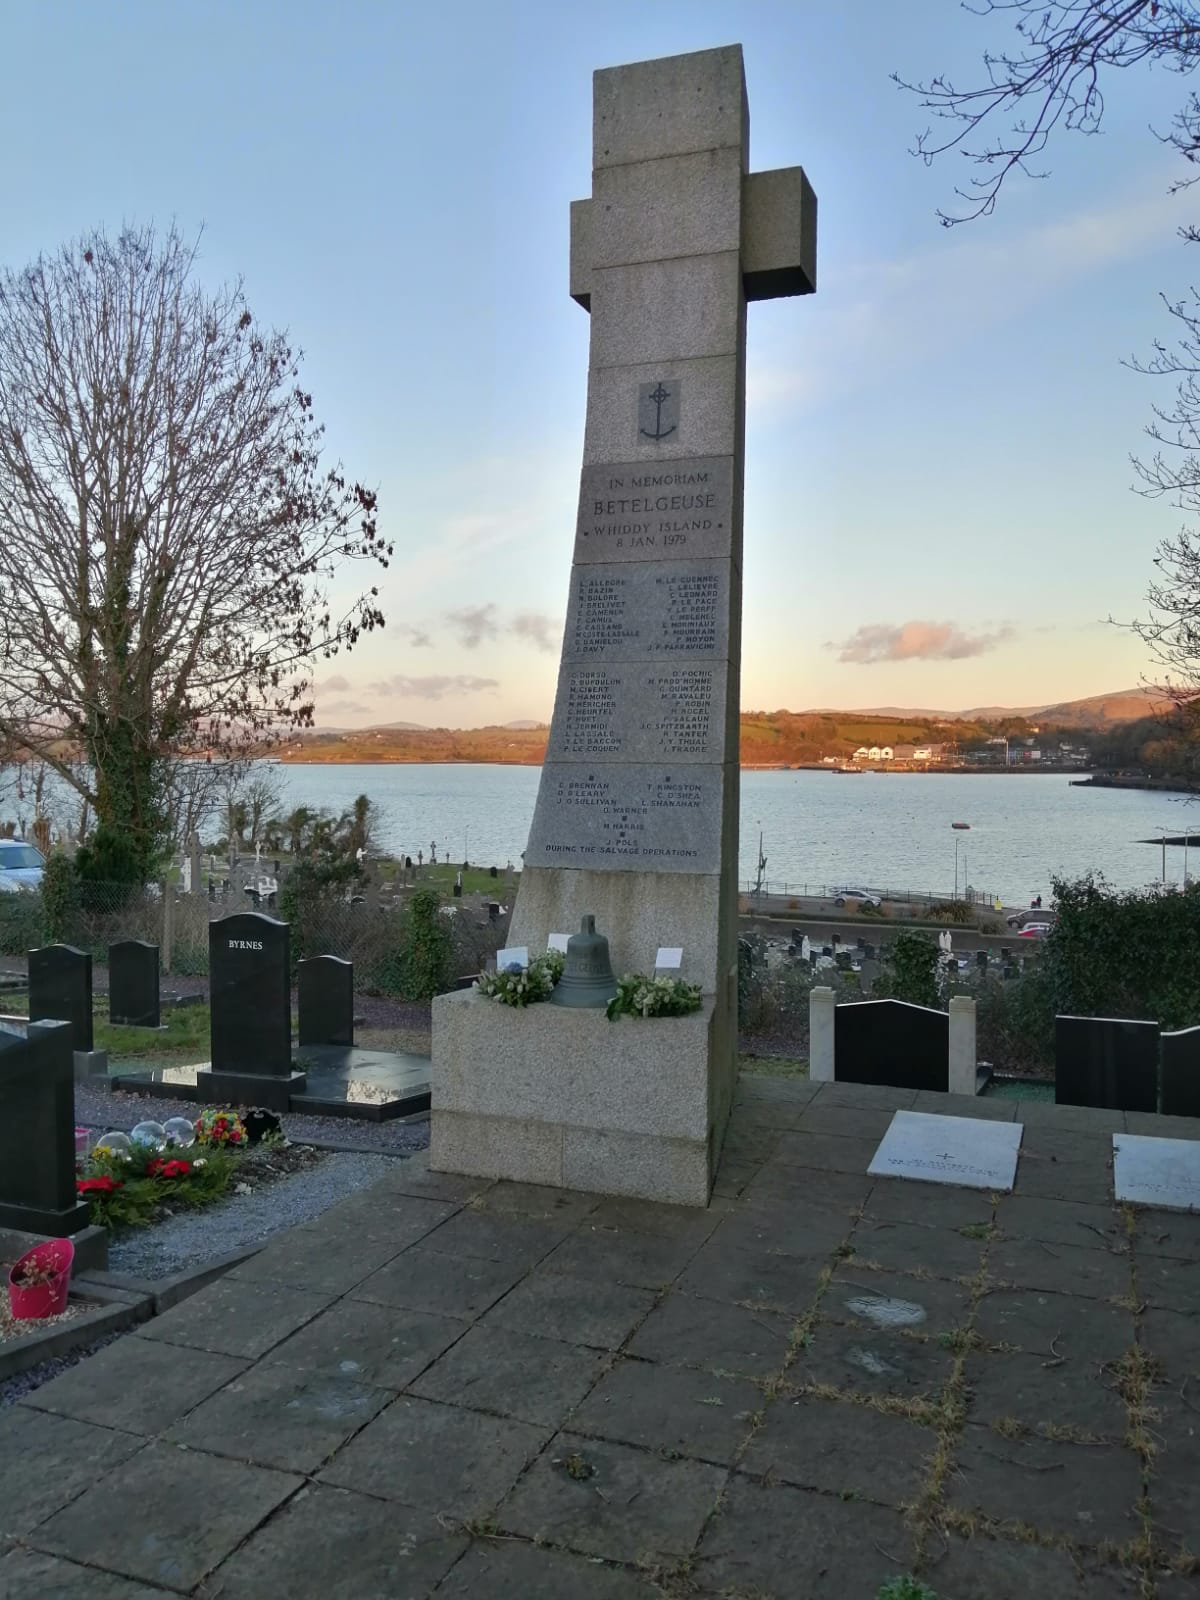 The Whiddy memorial, Bantry